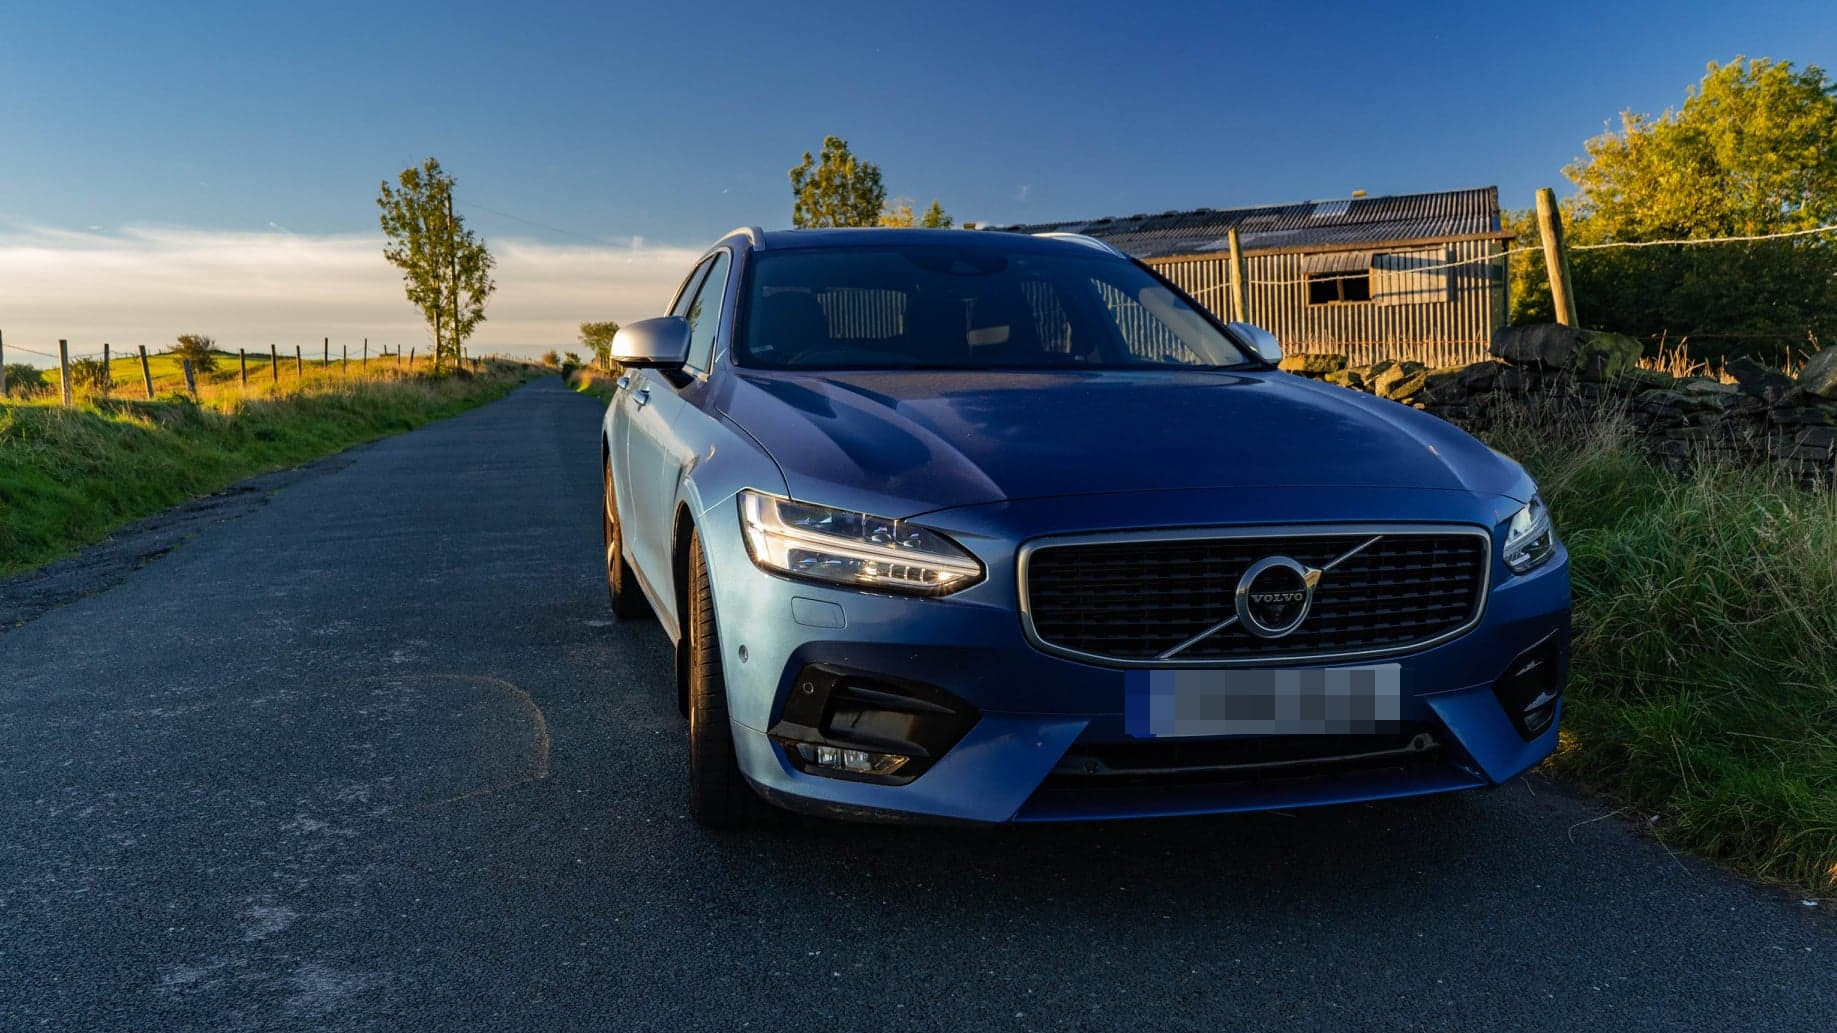 Around 6,000 Irish-owned Volvo cars recalled over engine fault fear